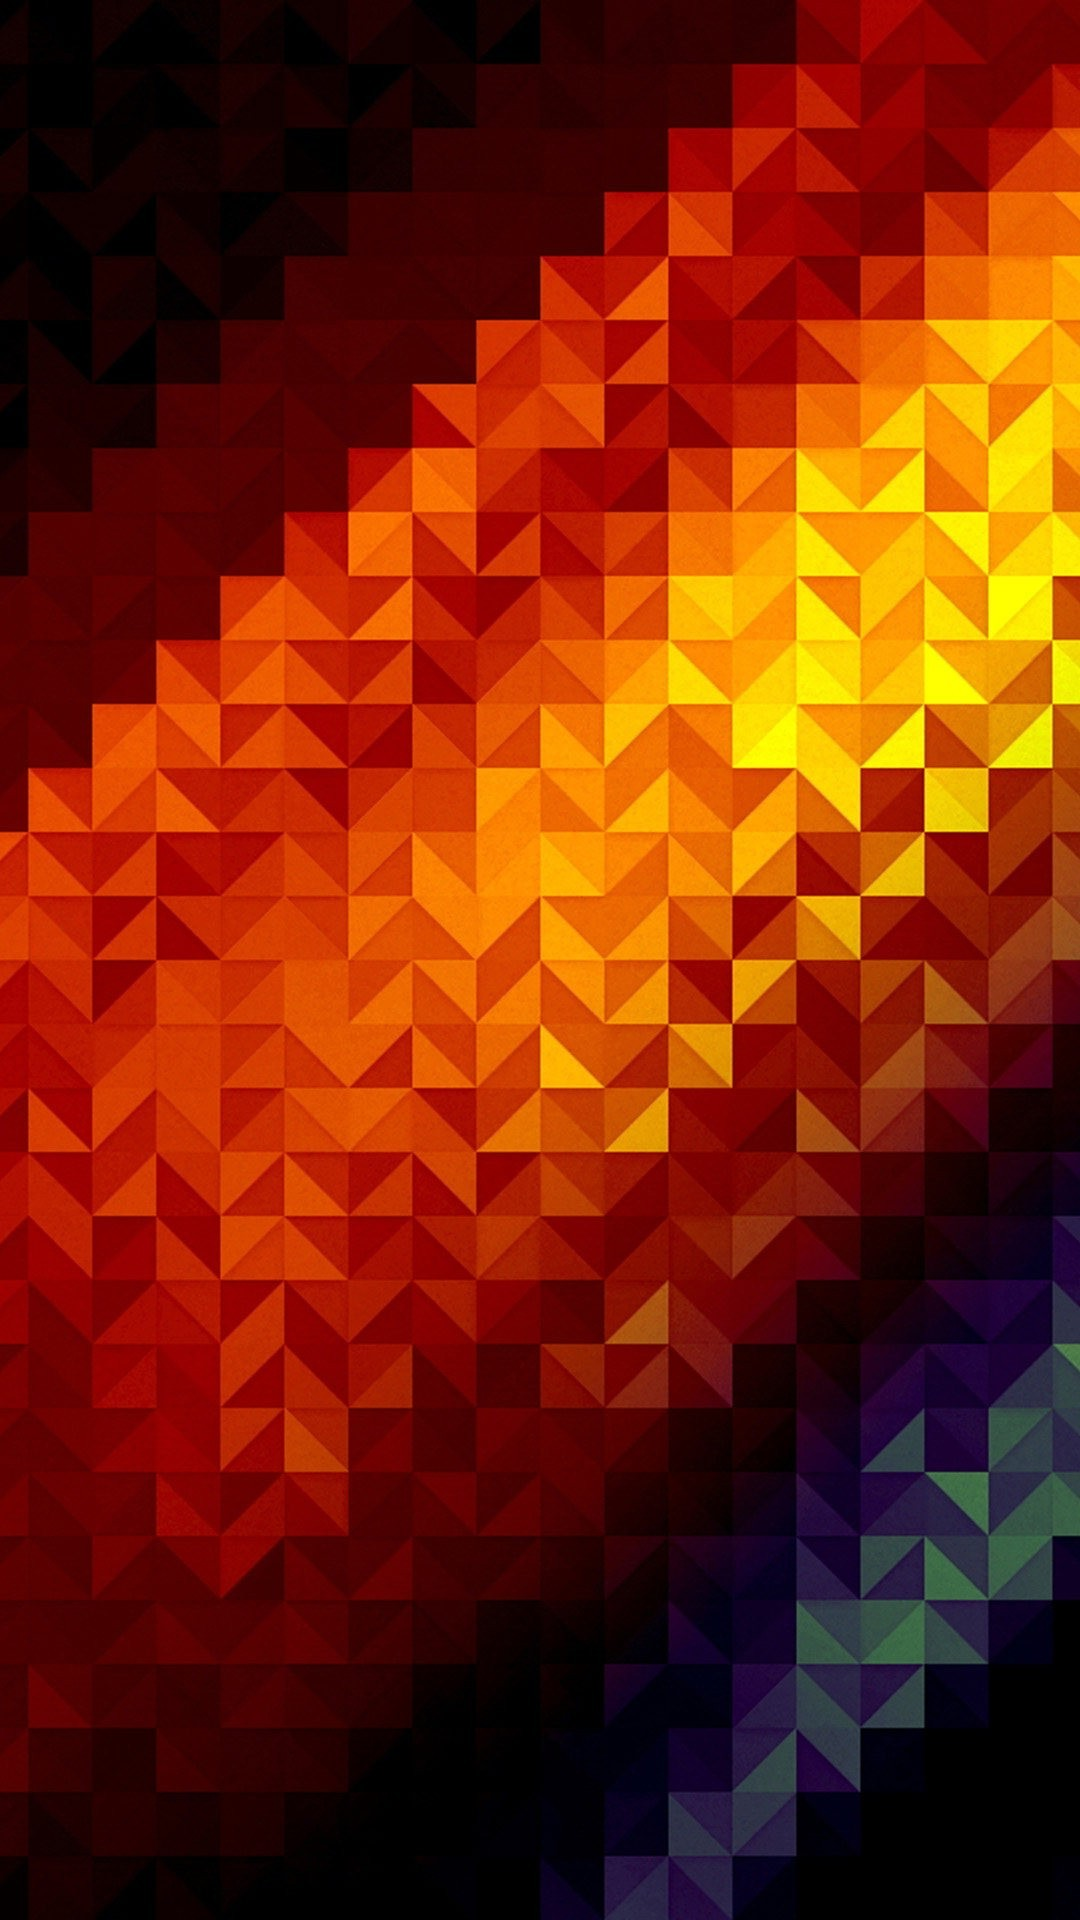 Abstract Hd Wallpapers For Xiaomi Redmi Note 3 Wallpapers Pictures